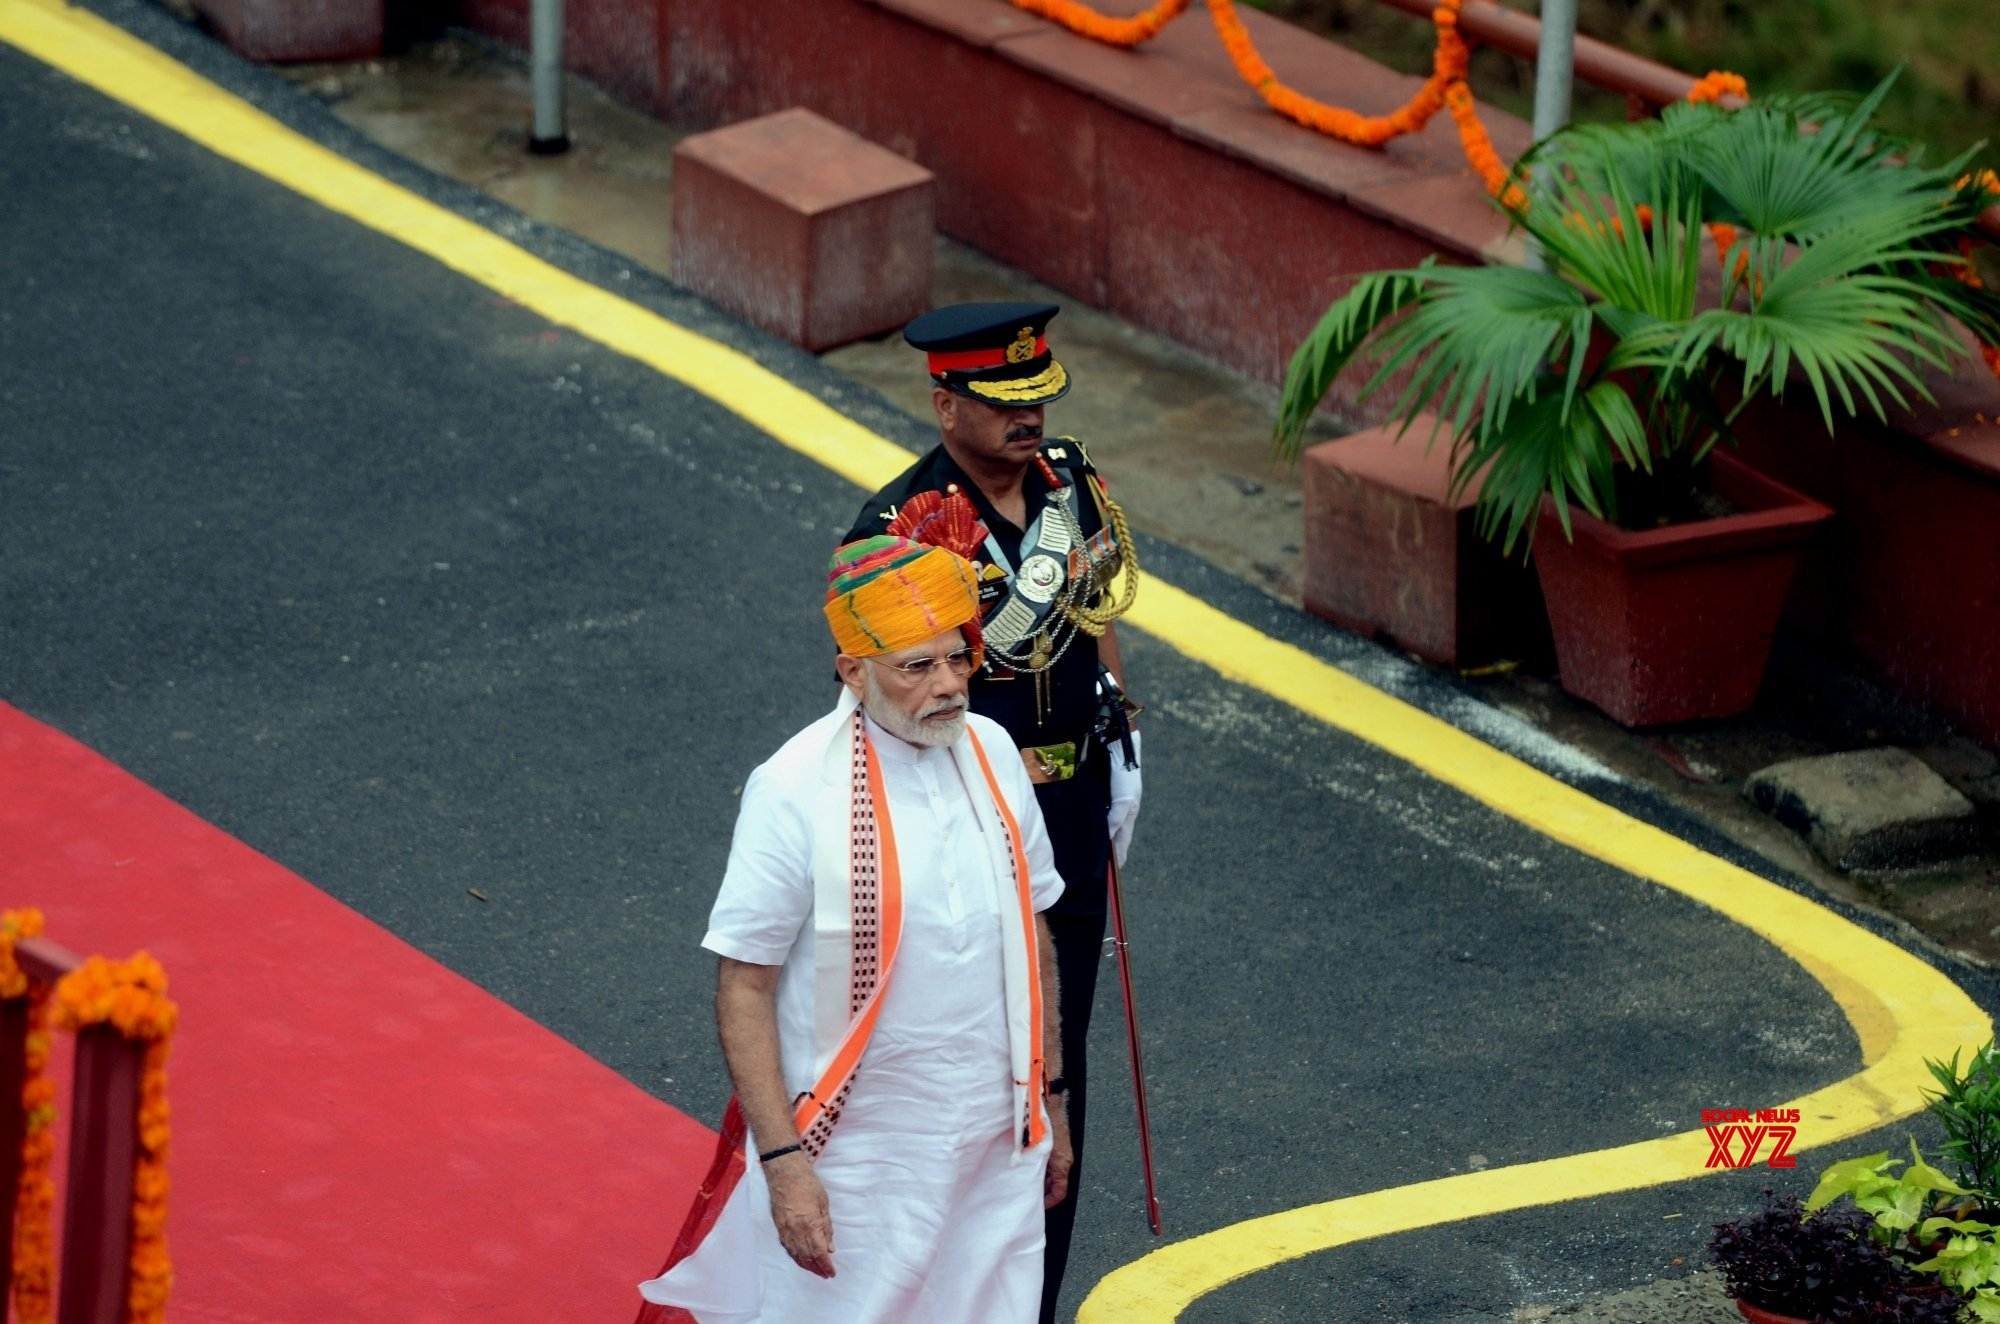 New Delhi: PM Modi during 73rd Independence Day celebrations at Red Fort #Gallery